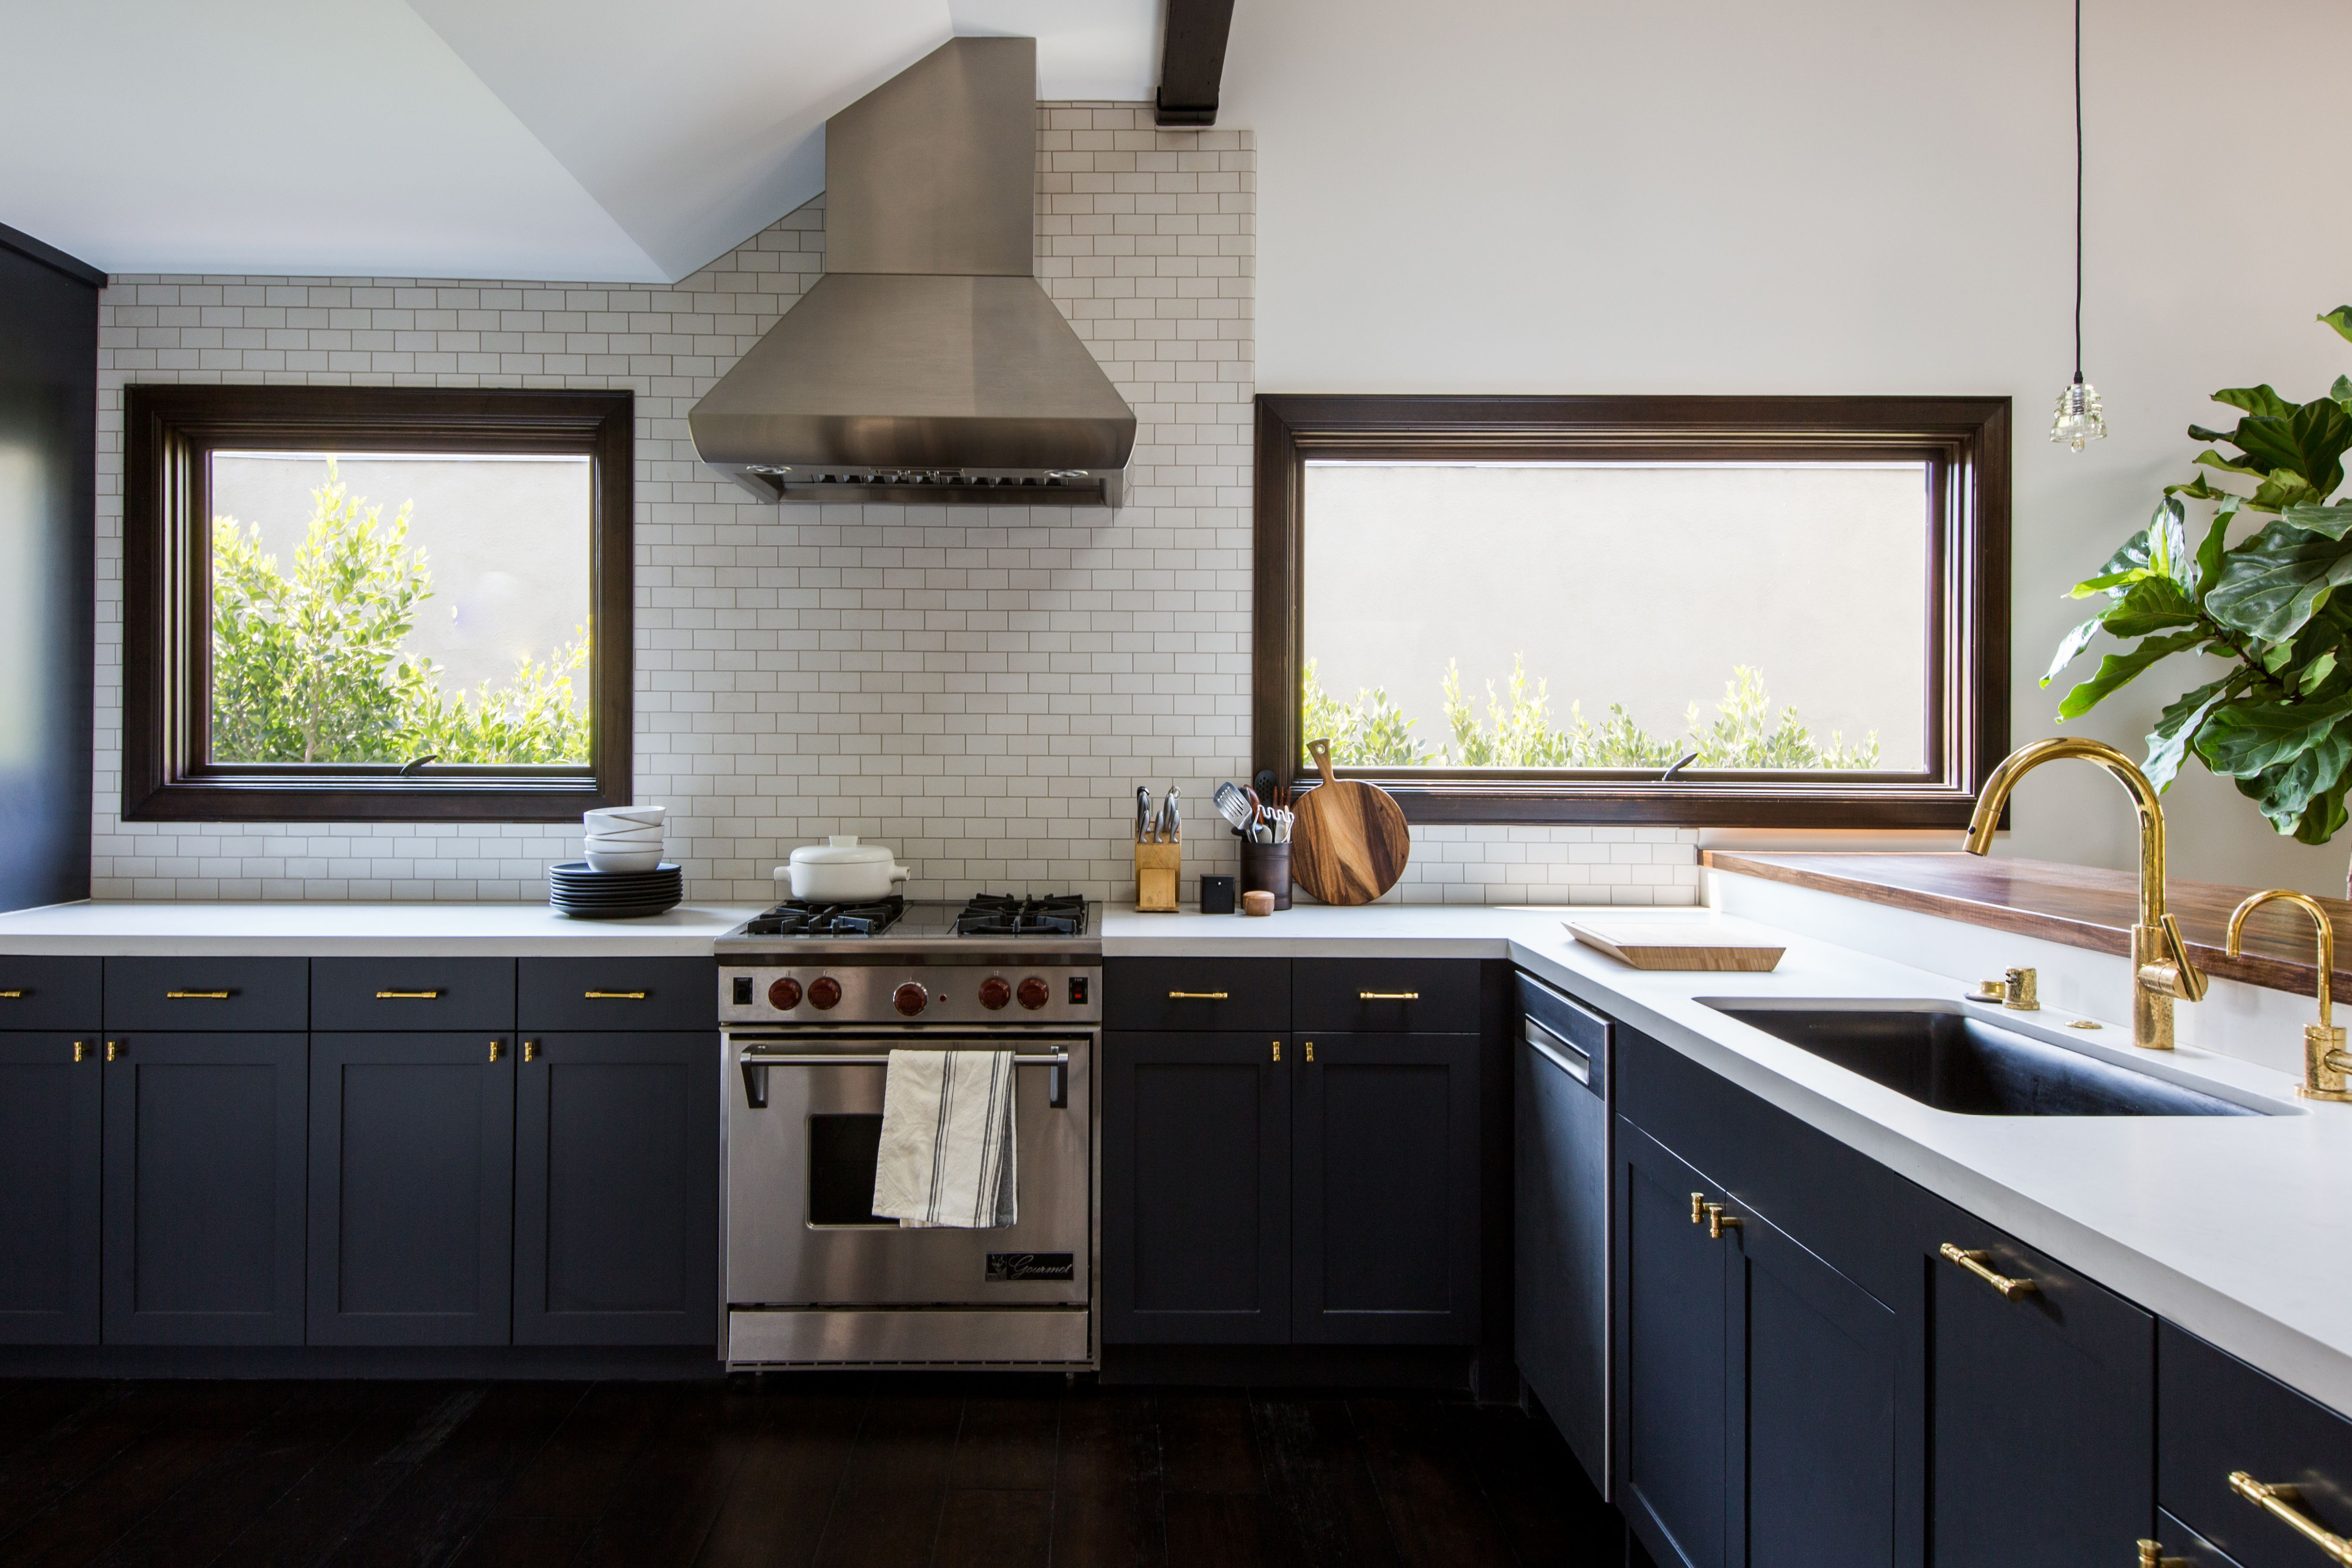 The Black And White Kitchen In A 1920s La Bungalow Remodel By Brian Paquette Remodelista Kitchen Design Blue Kitchen Cabinets Navy Blue Kitchen Cabinets